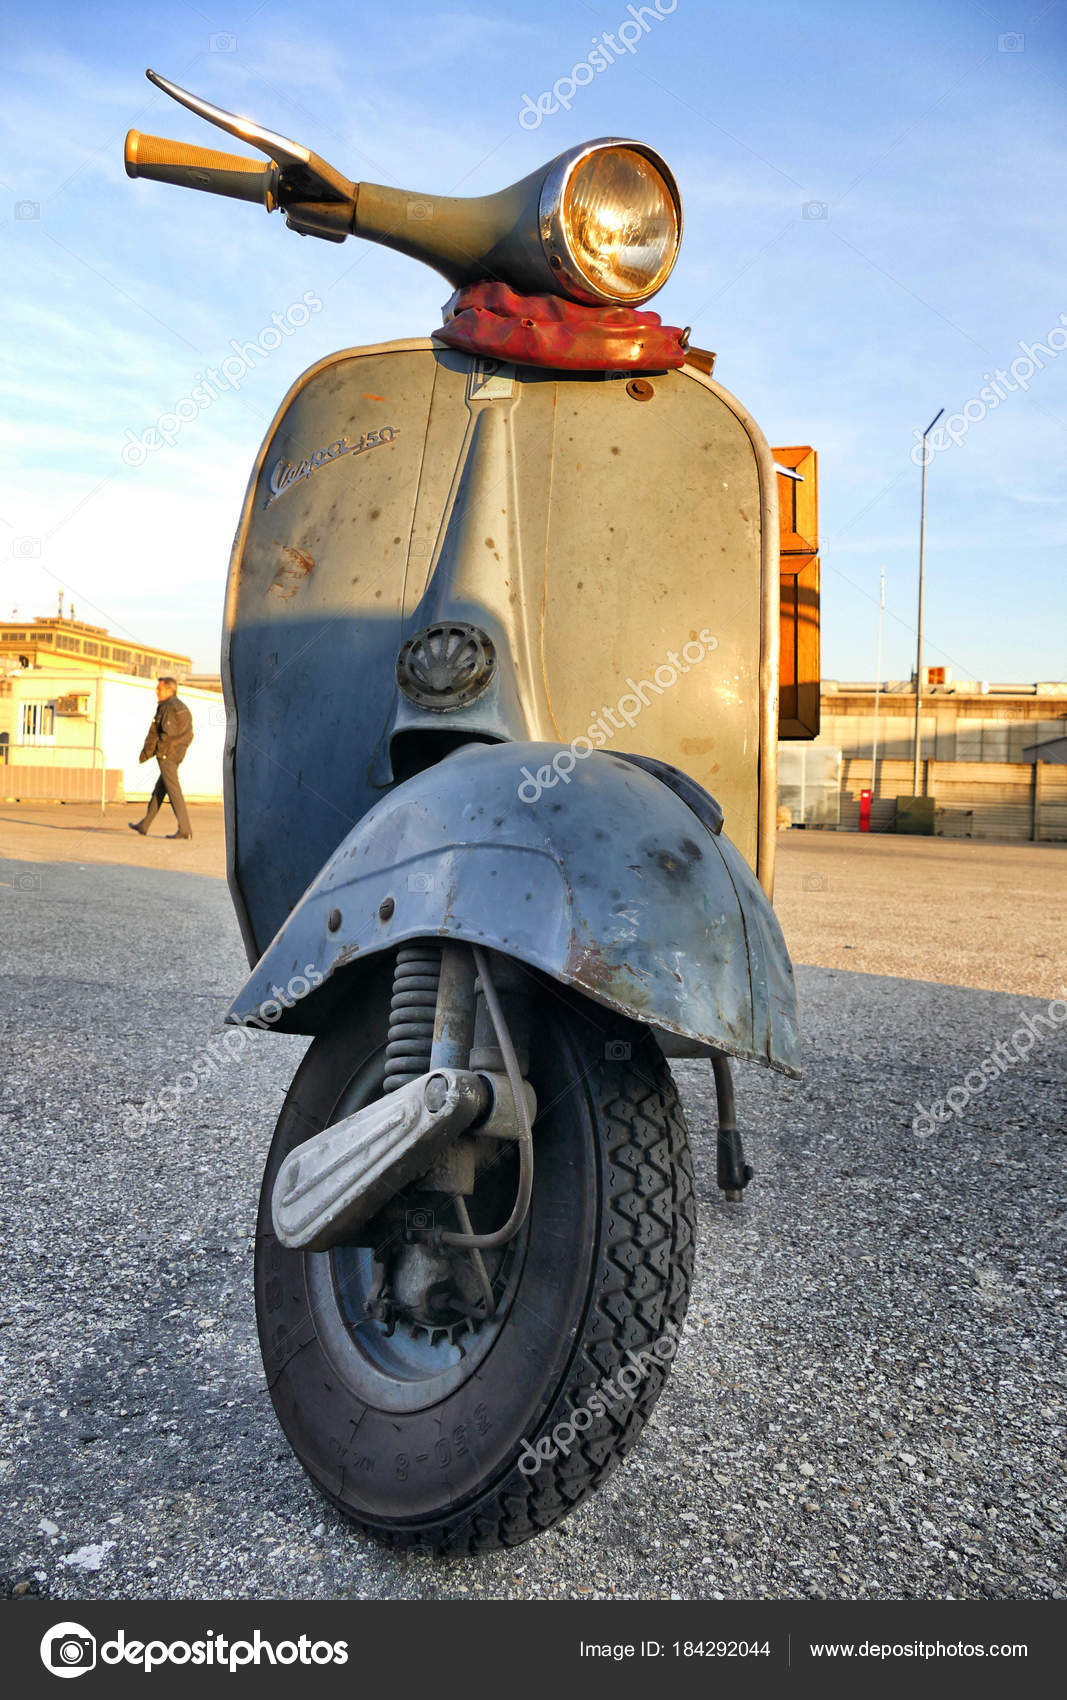 Italian Iconic Vintage Vespa Scooter Parked Close Turin Italy